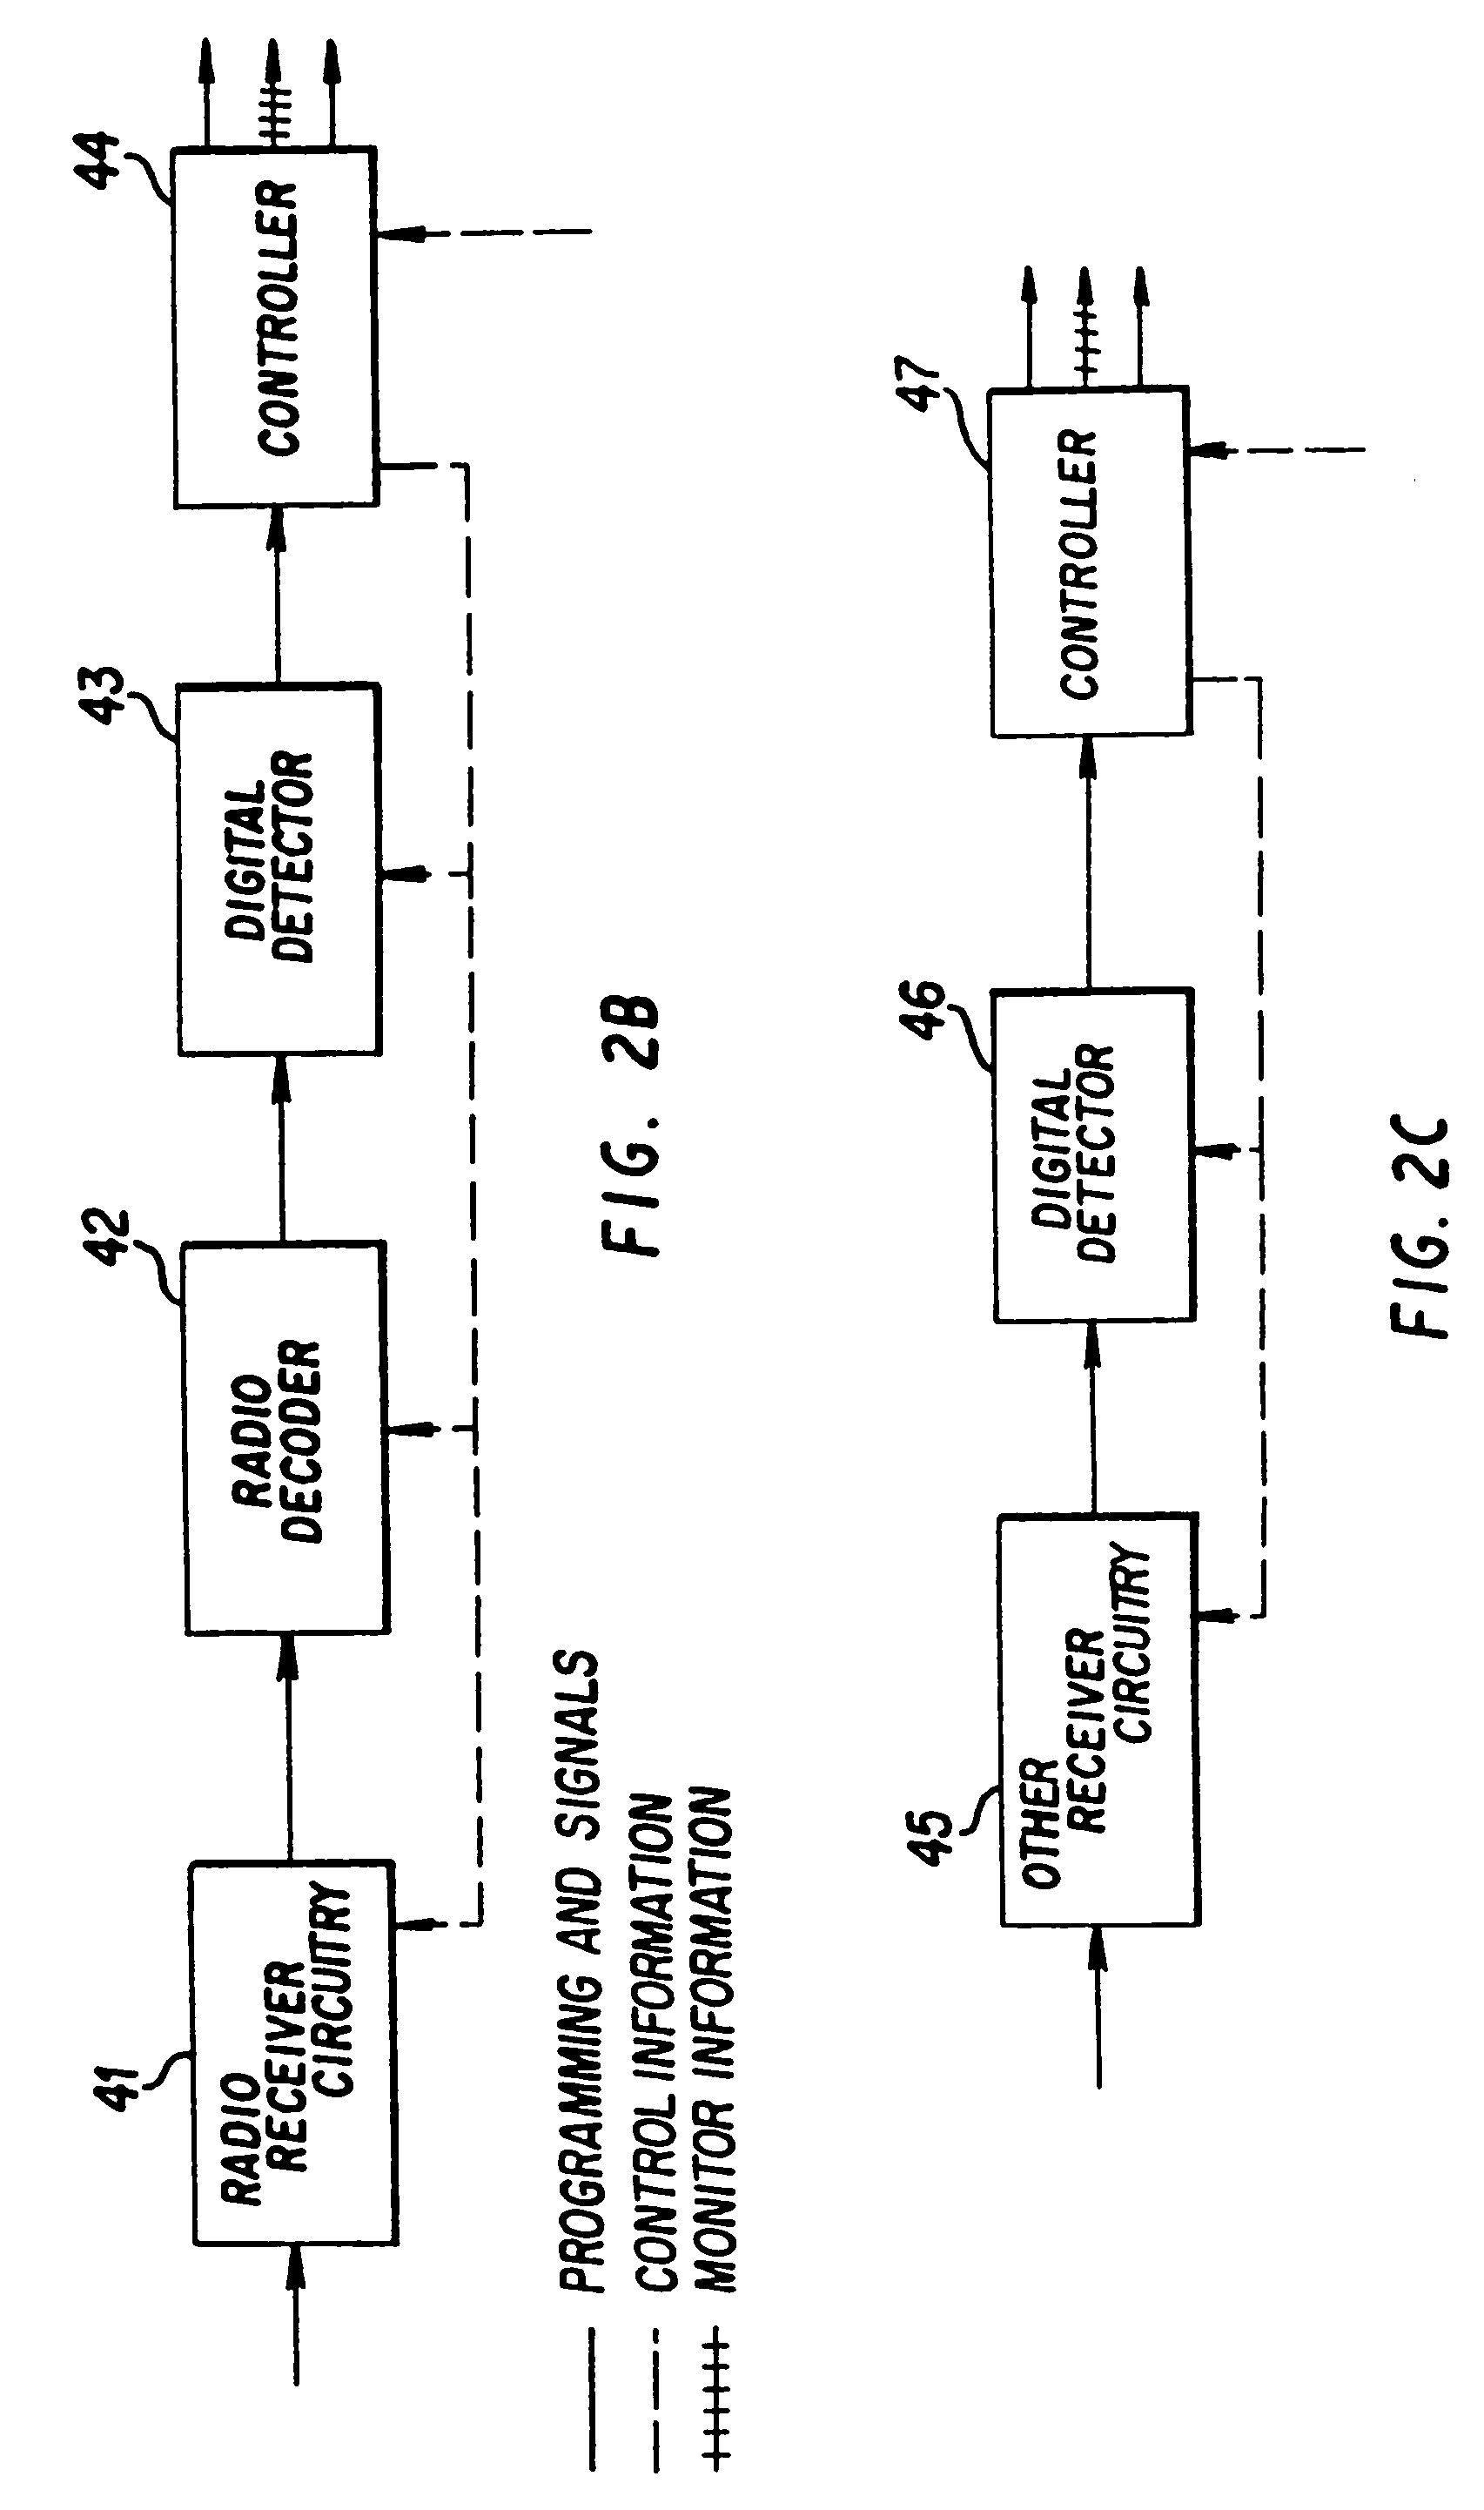 Us7966640b1 Signal Processing Apparatus And Methods Google Patents Fm Demodulation With Rlc Circuits Applet